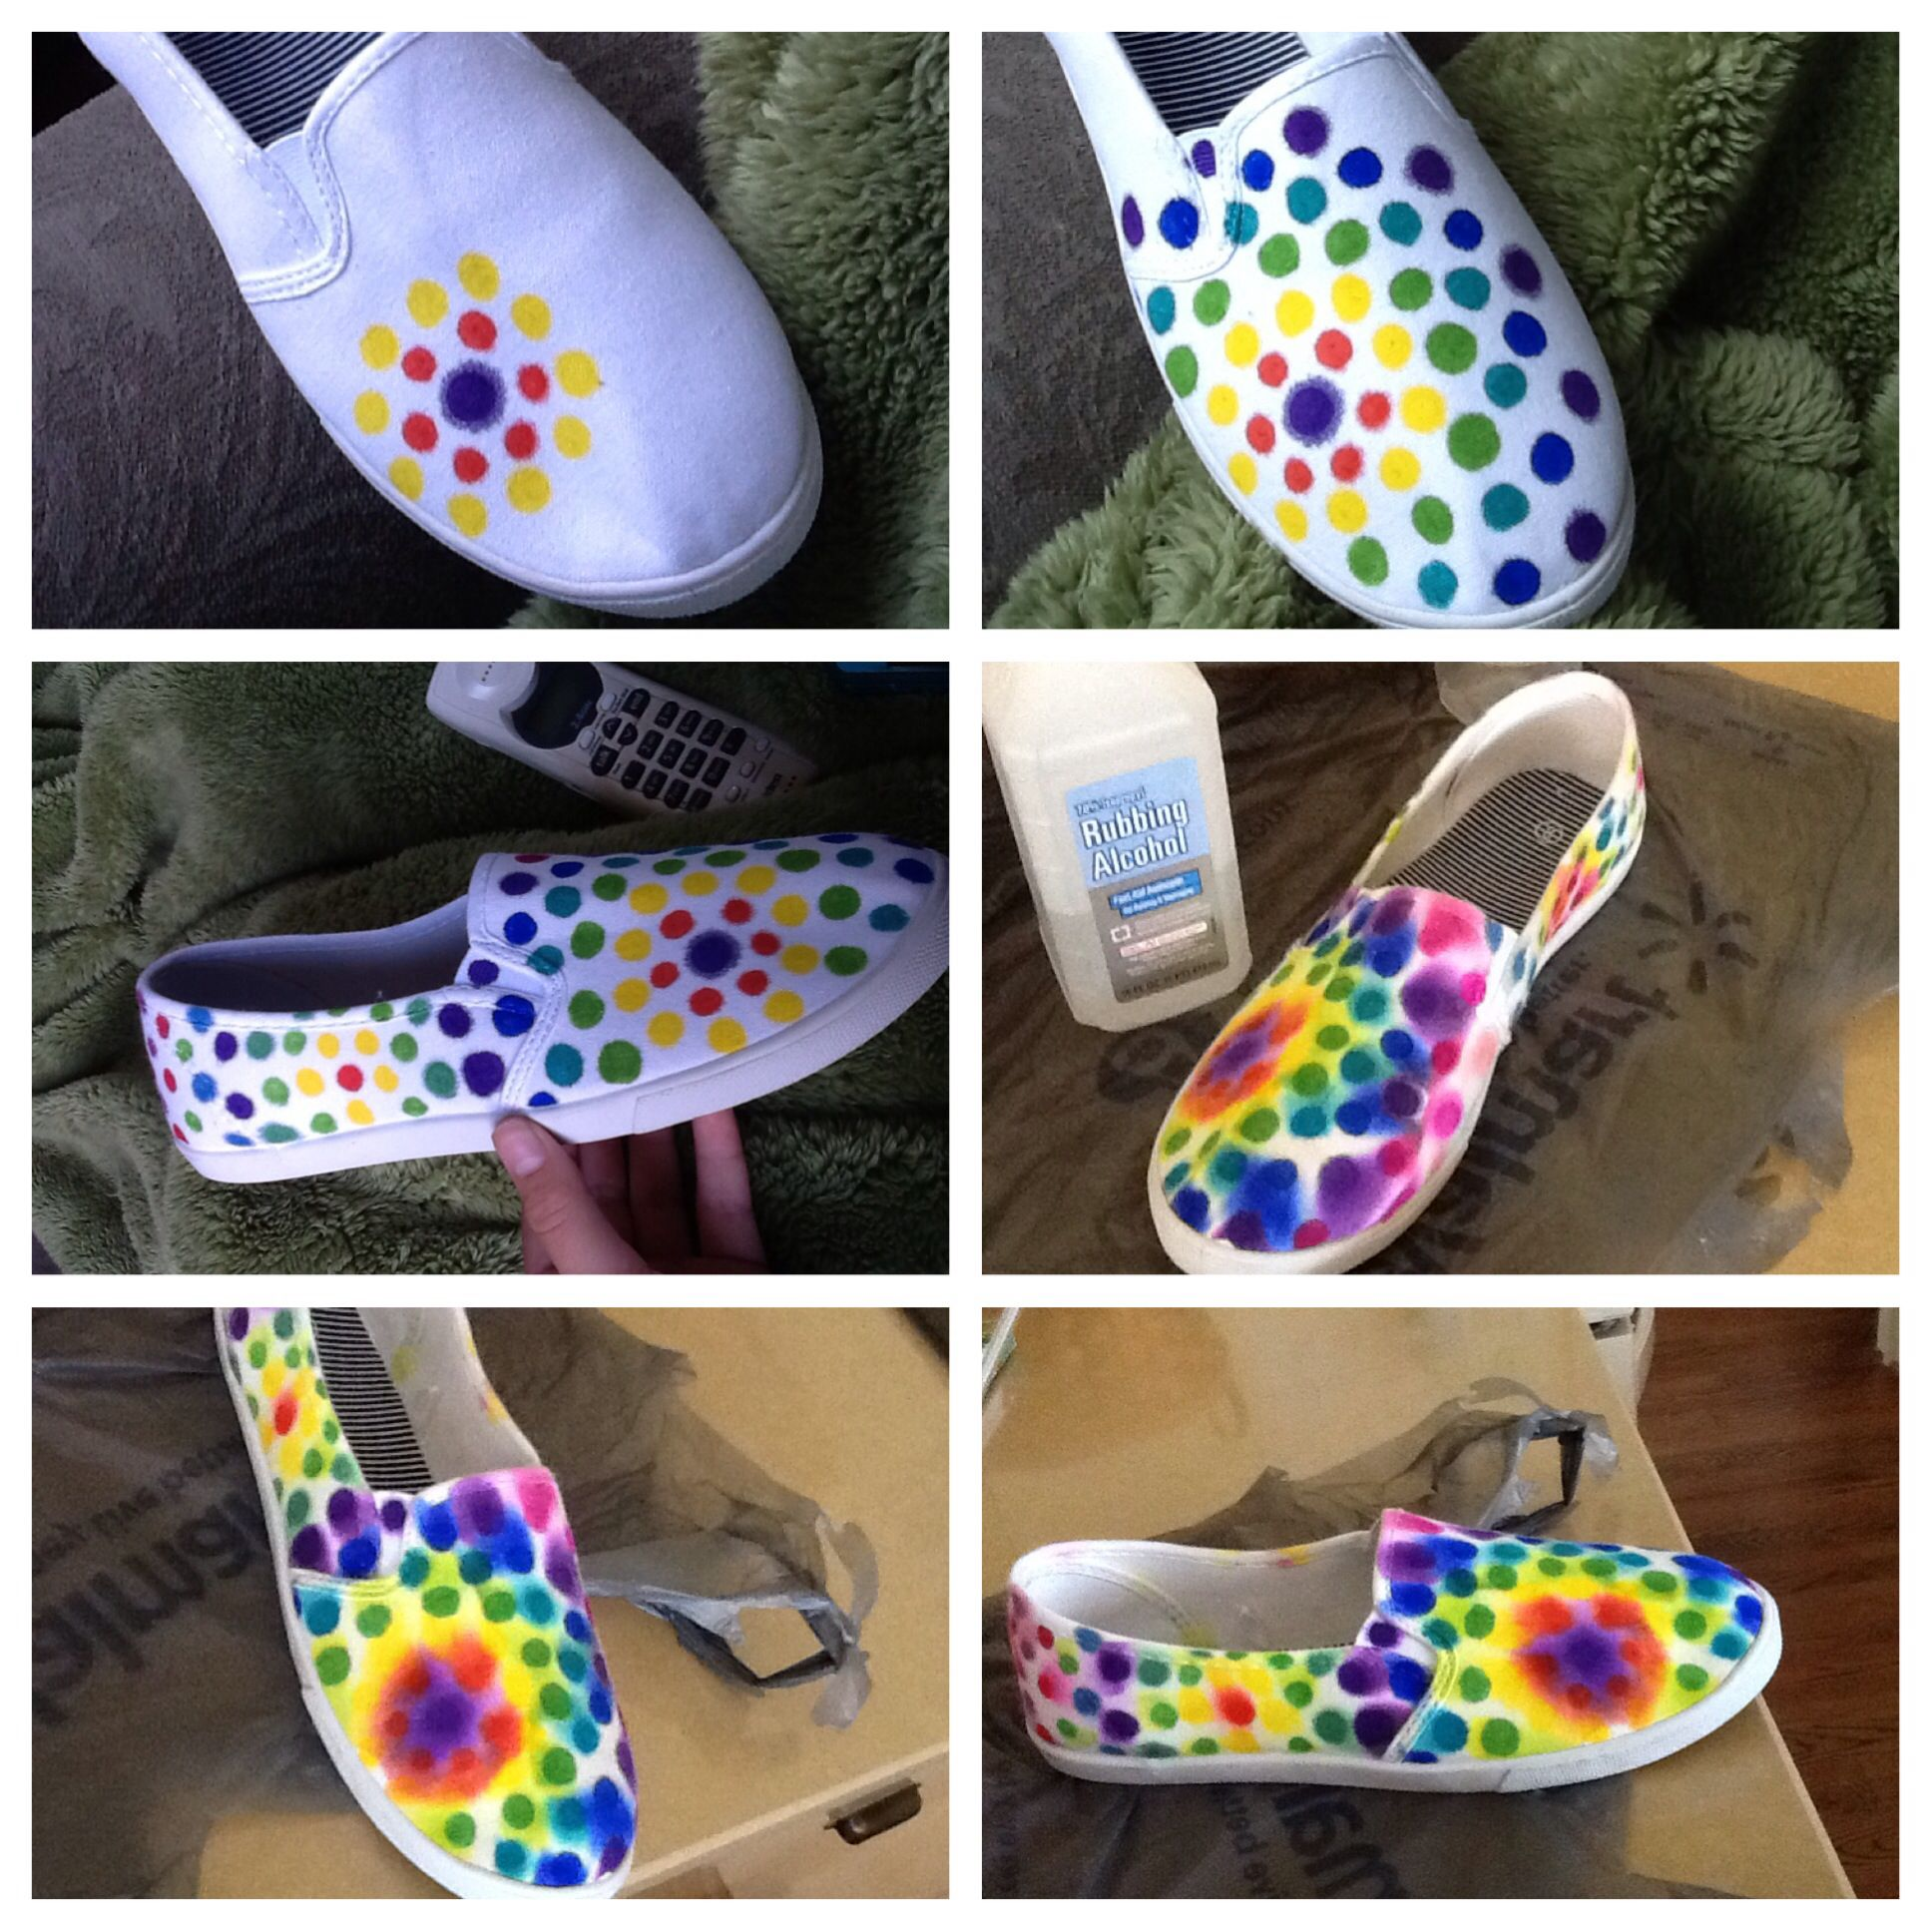 diy sharpie and rubbing alcohol shoes 1) draw on shoes with